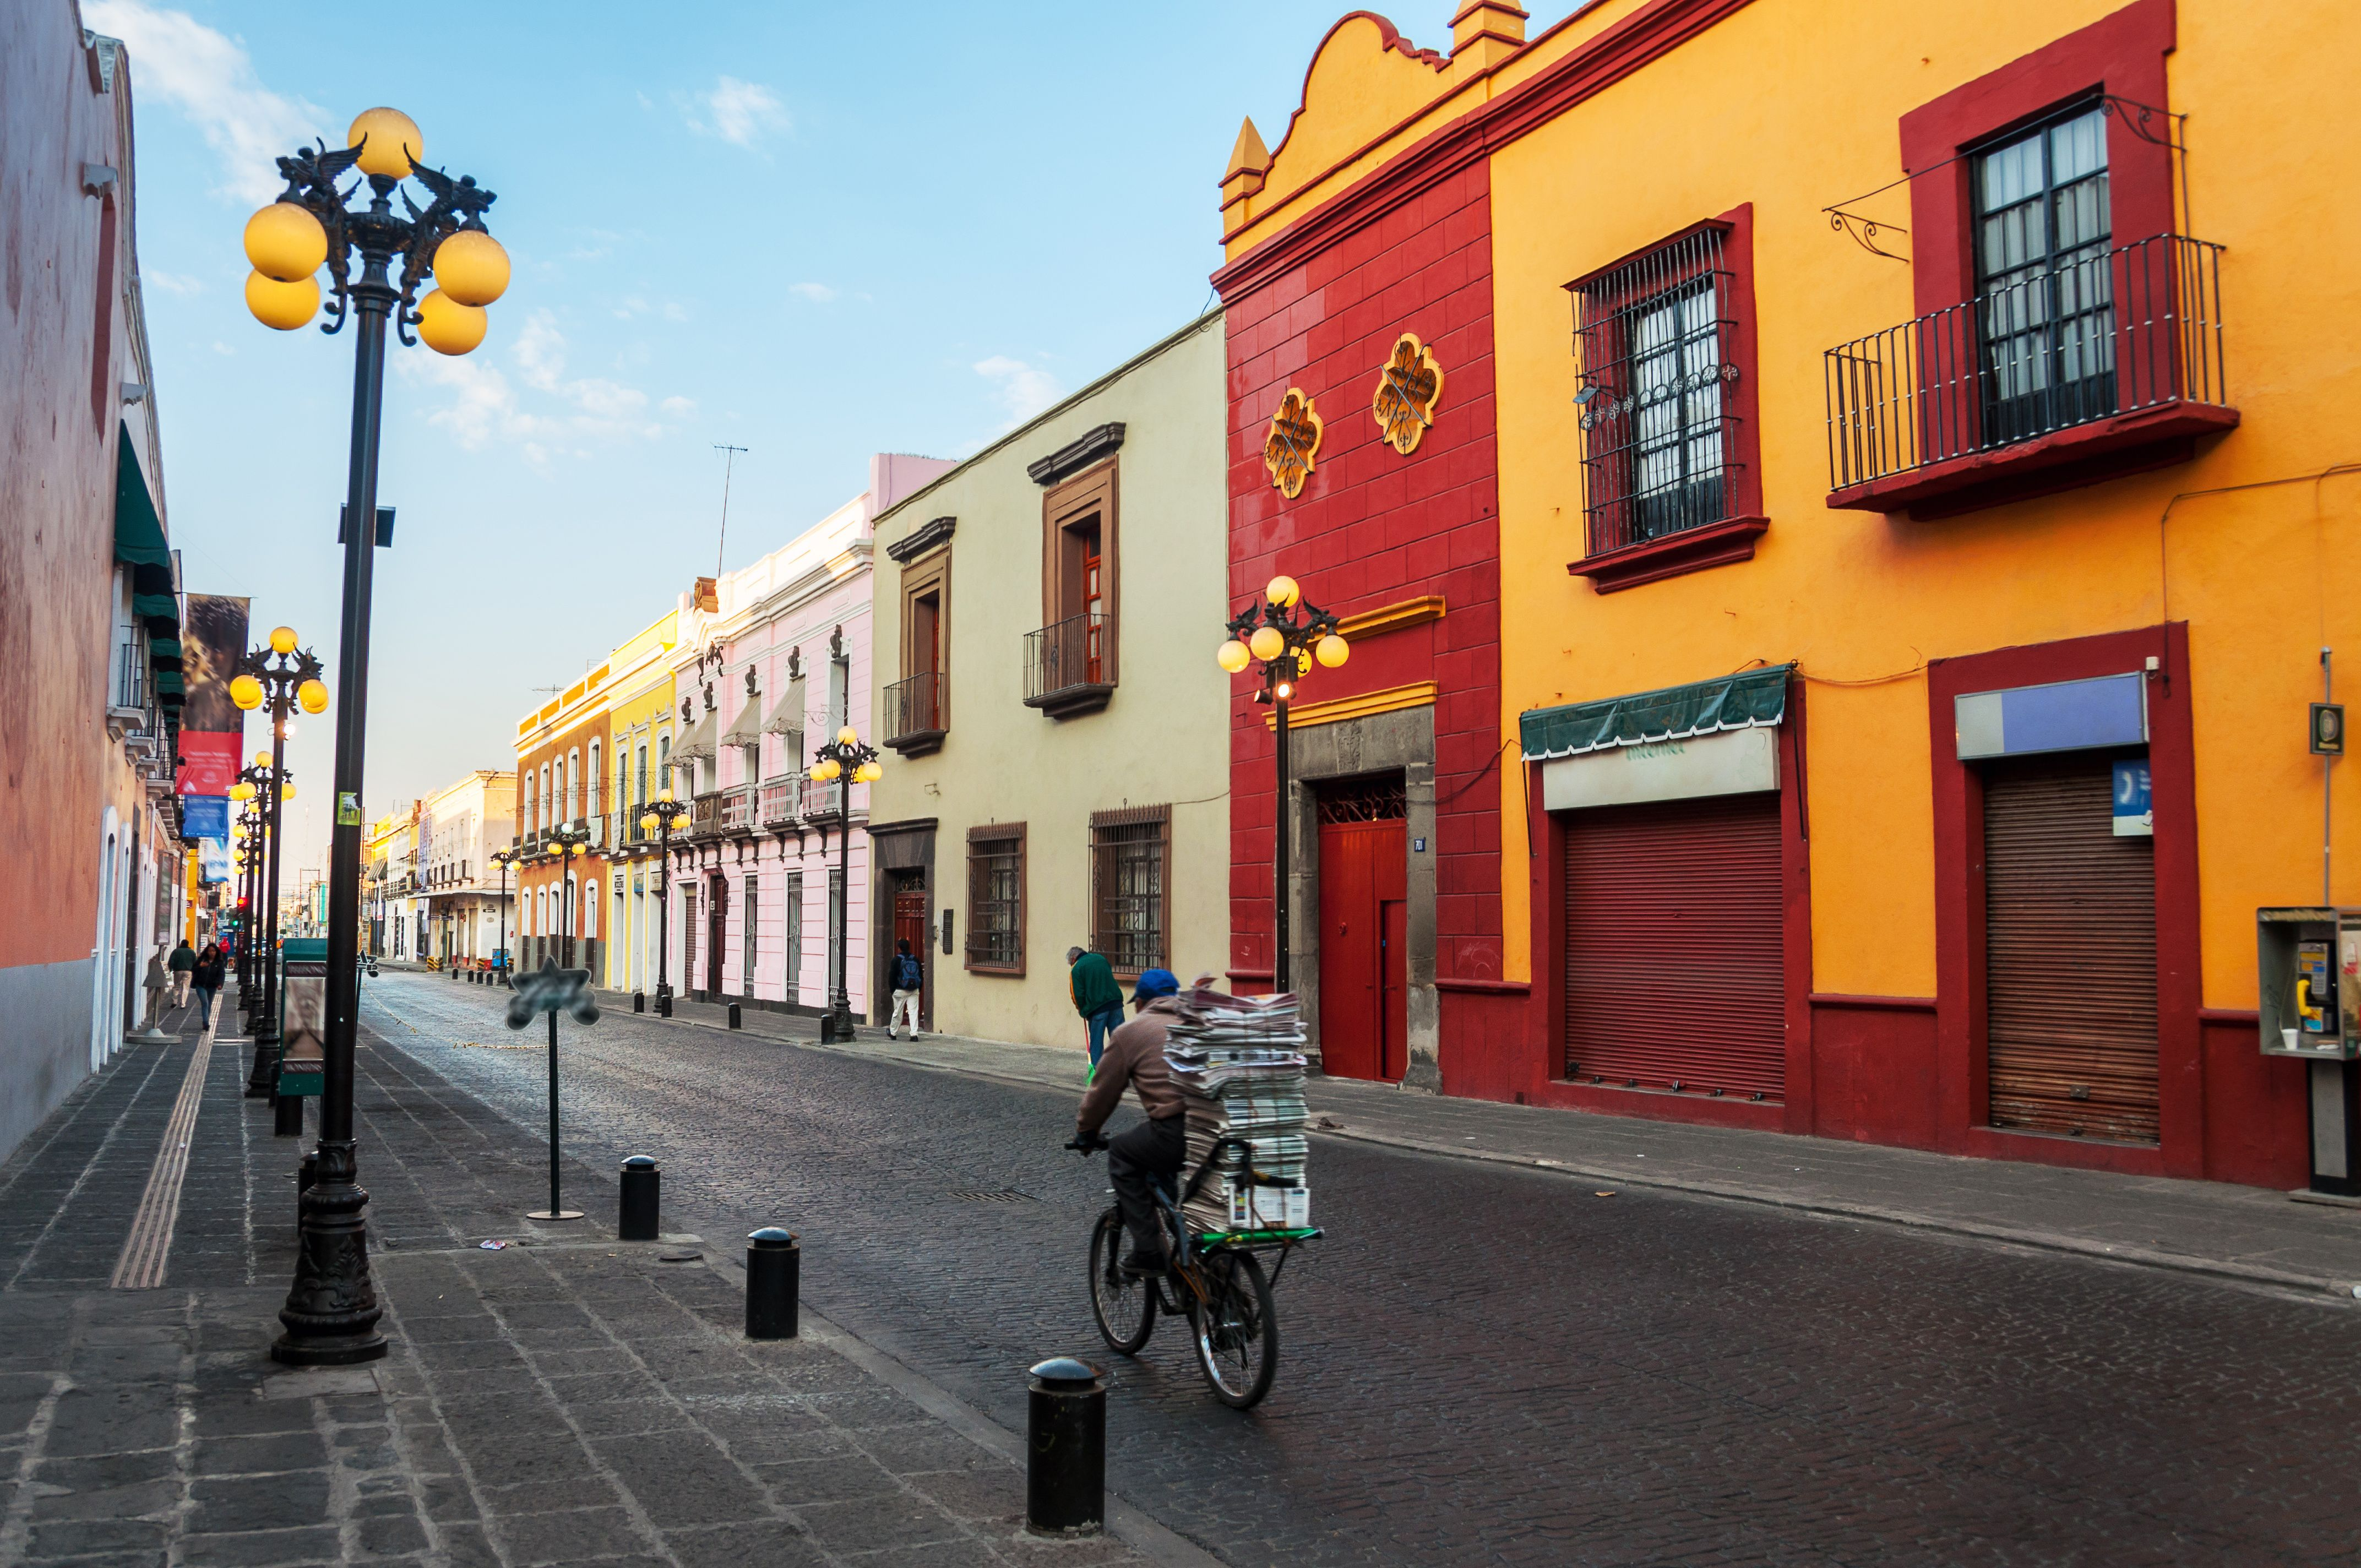 Morning streets of Puebla de Zaragoza - the one of the five most important Spanish colonial cities in Mexico. Its history and architectural styles are very famous